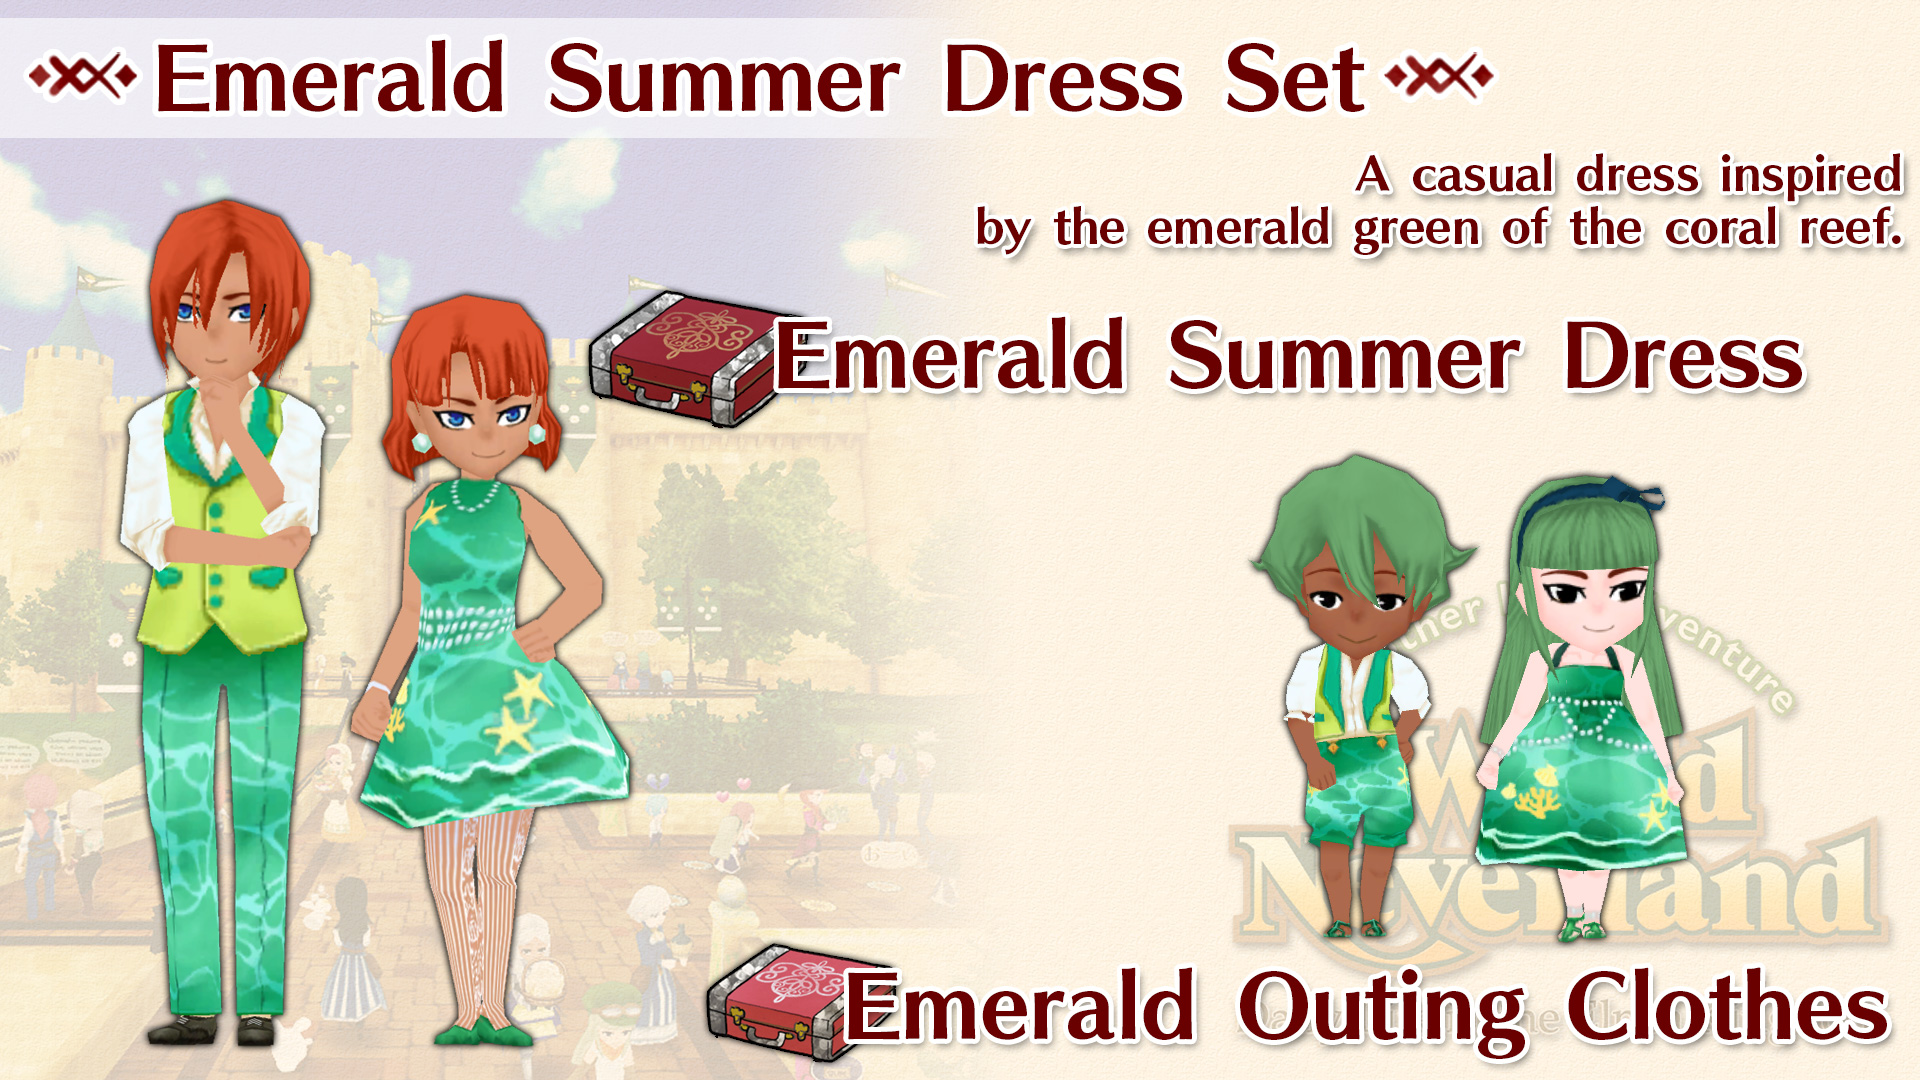 Emerald Summer Dress Set WorldNeverland - Elnea Kingdom